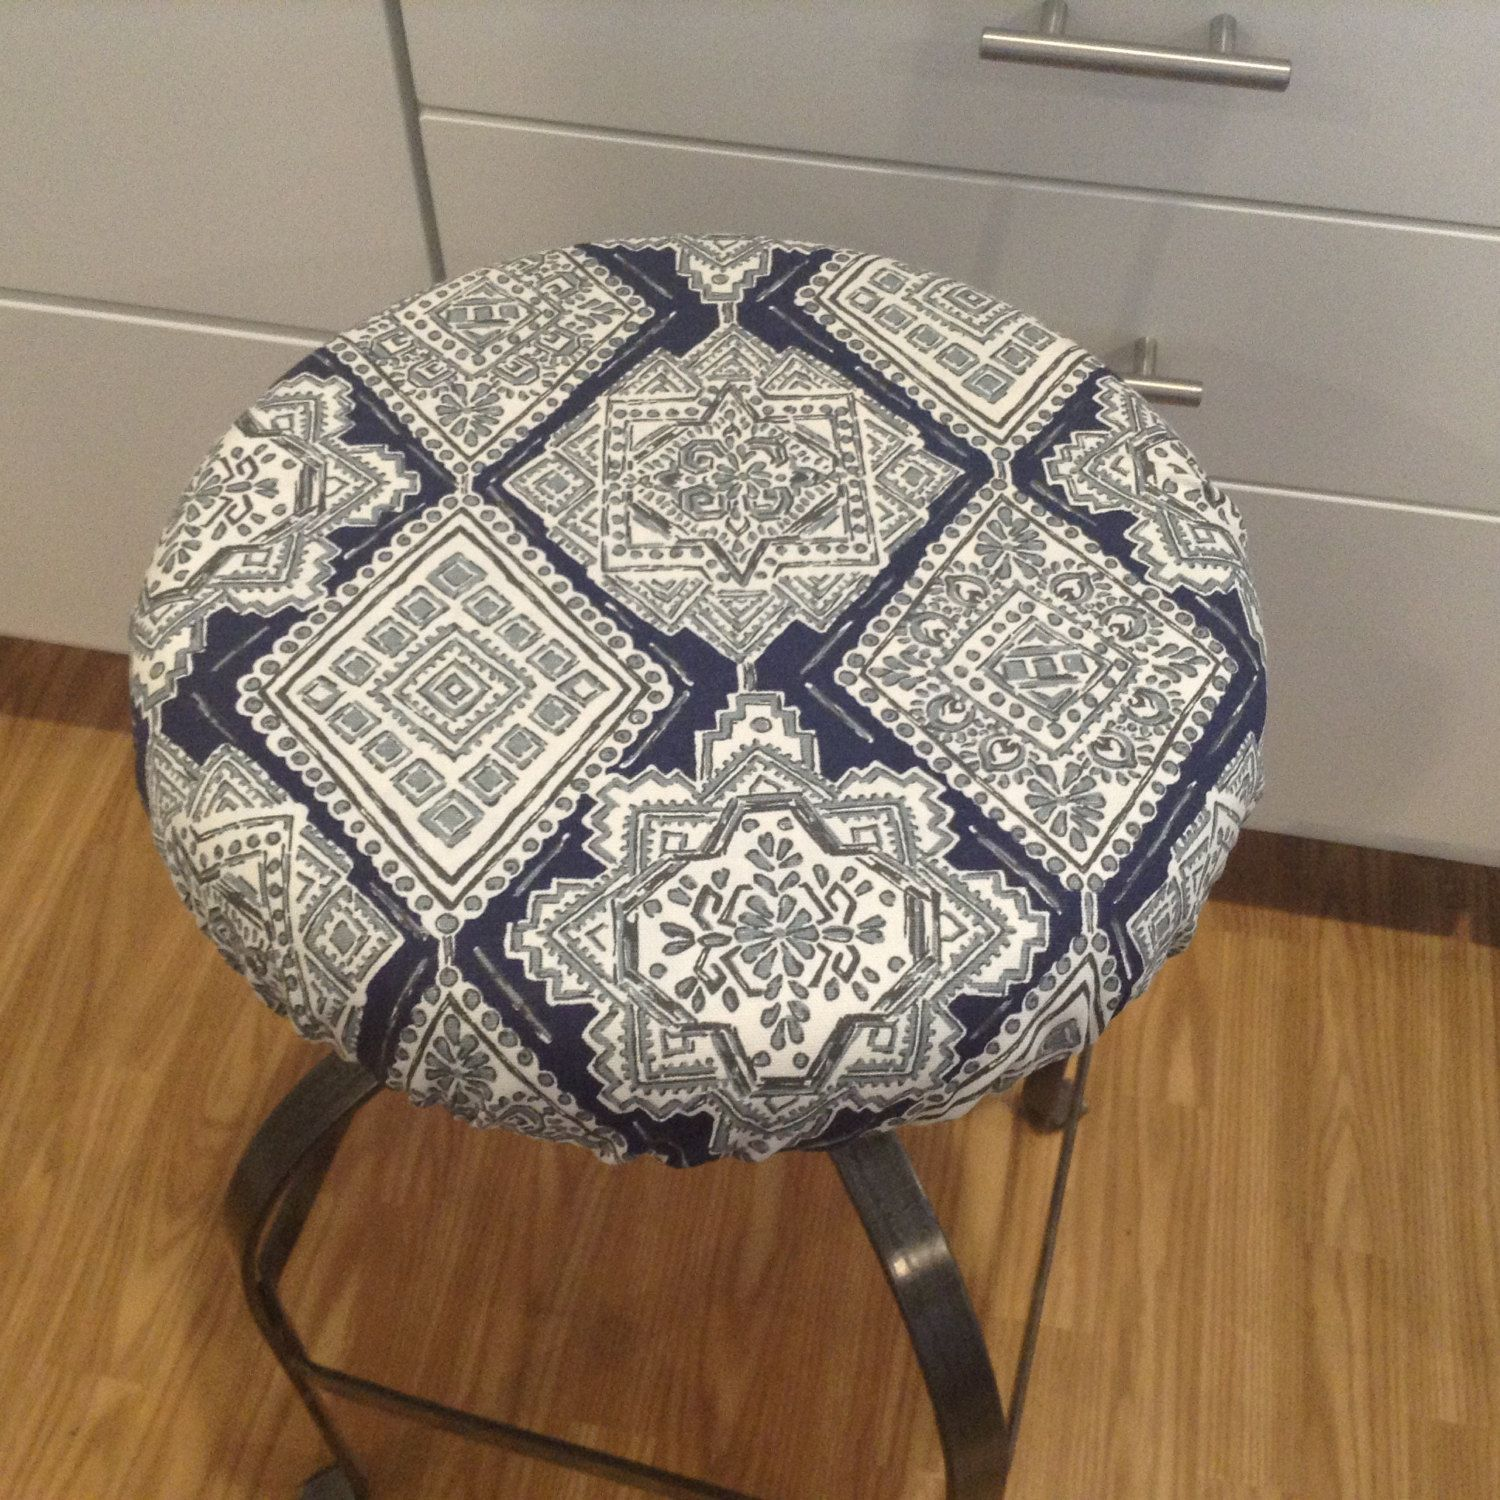 Elasticized Round Barstool Cover Kitchen Counterstool Seat Cover Vintage Indigo Blue With Gray On White Wa Bar Stool Cushions Bar Stool Covers Vintage Indigo